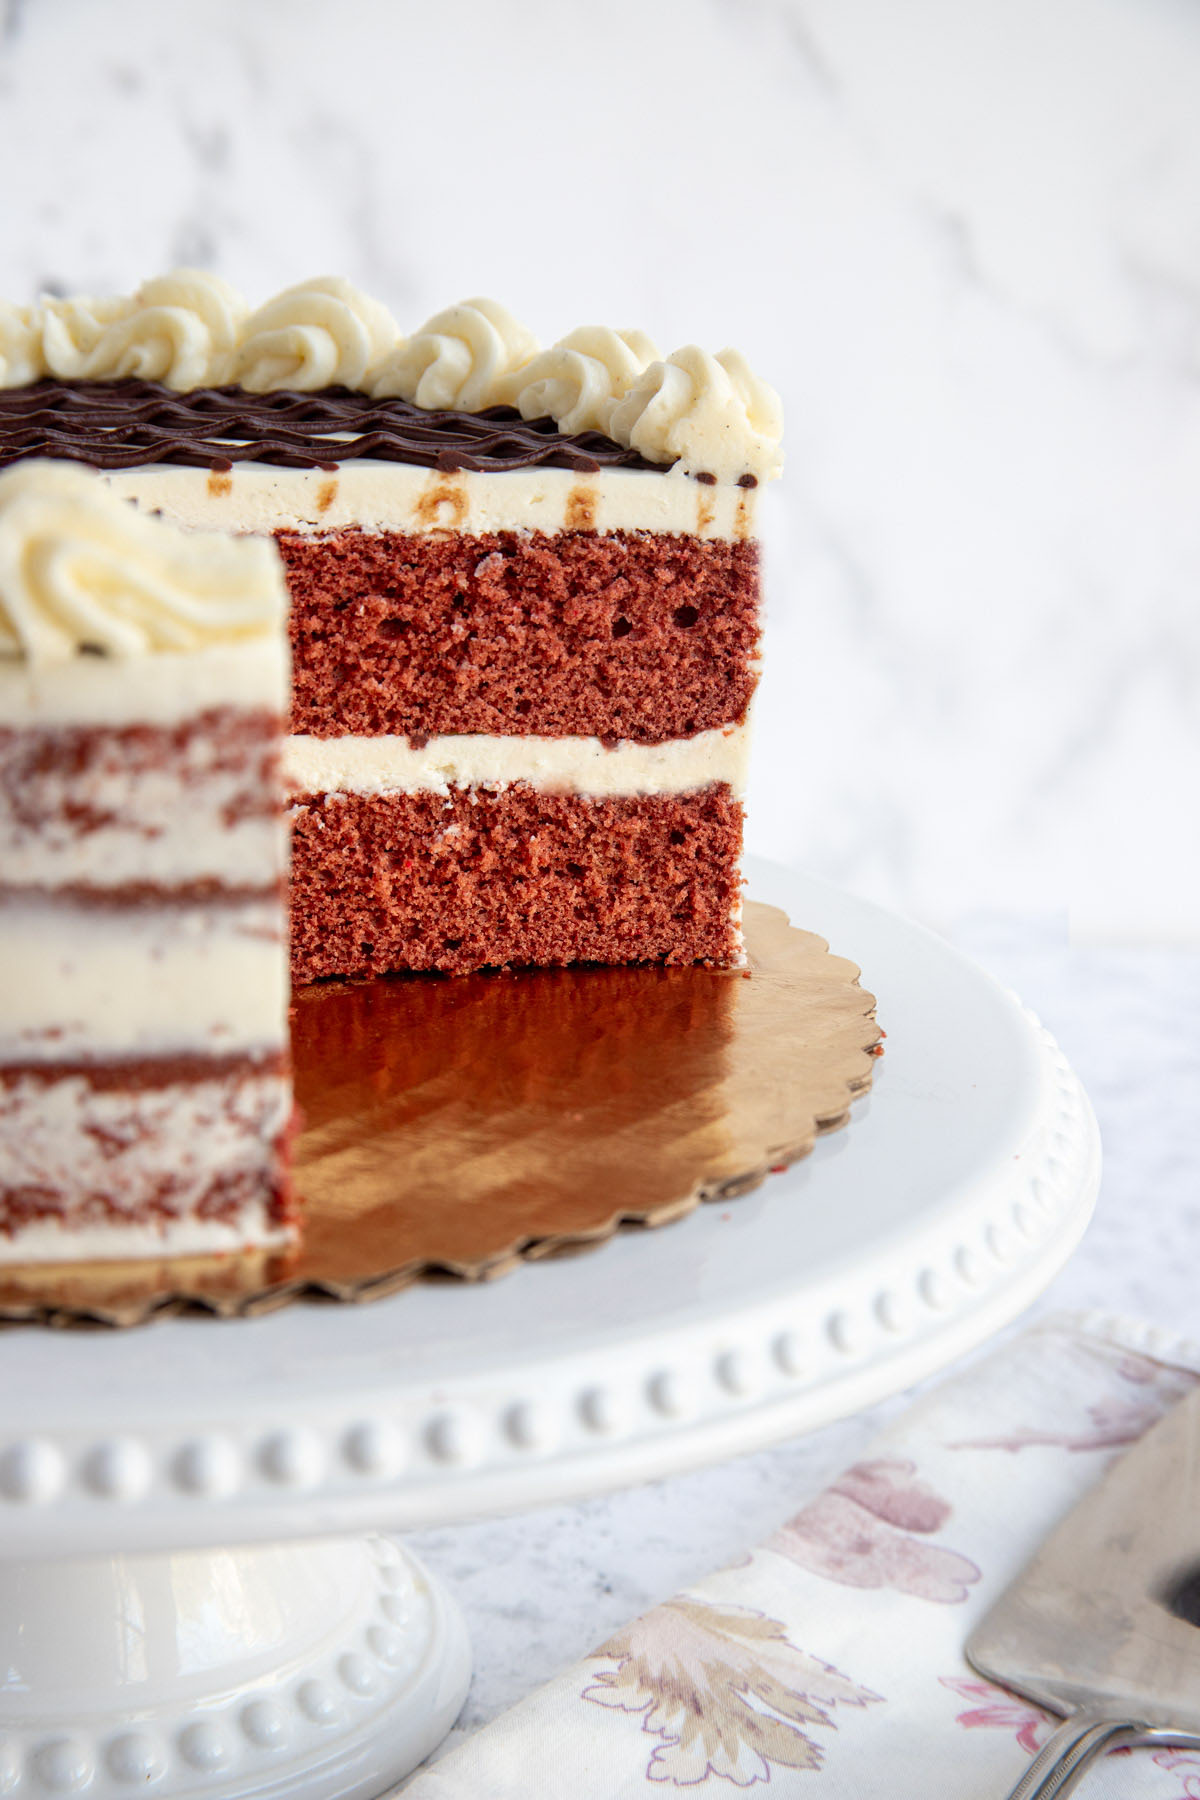 A cut Red Velvet Cake with mascarpone buttercream on a cake plate